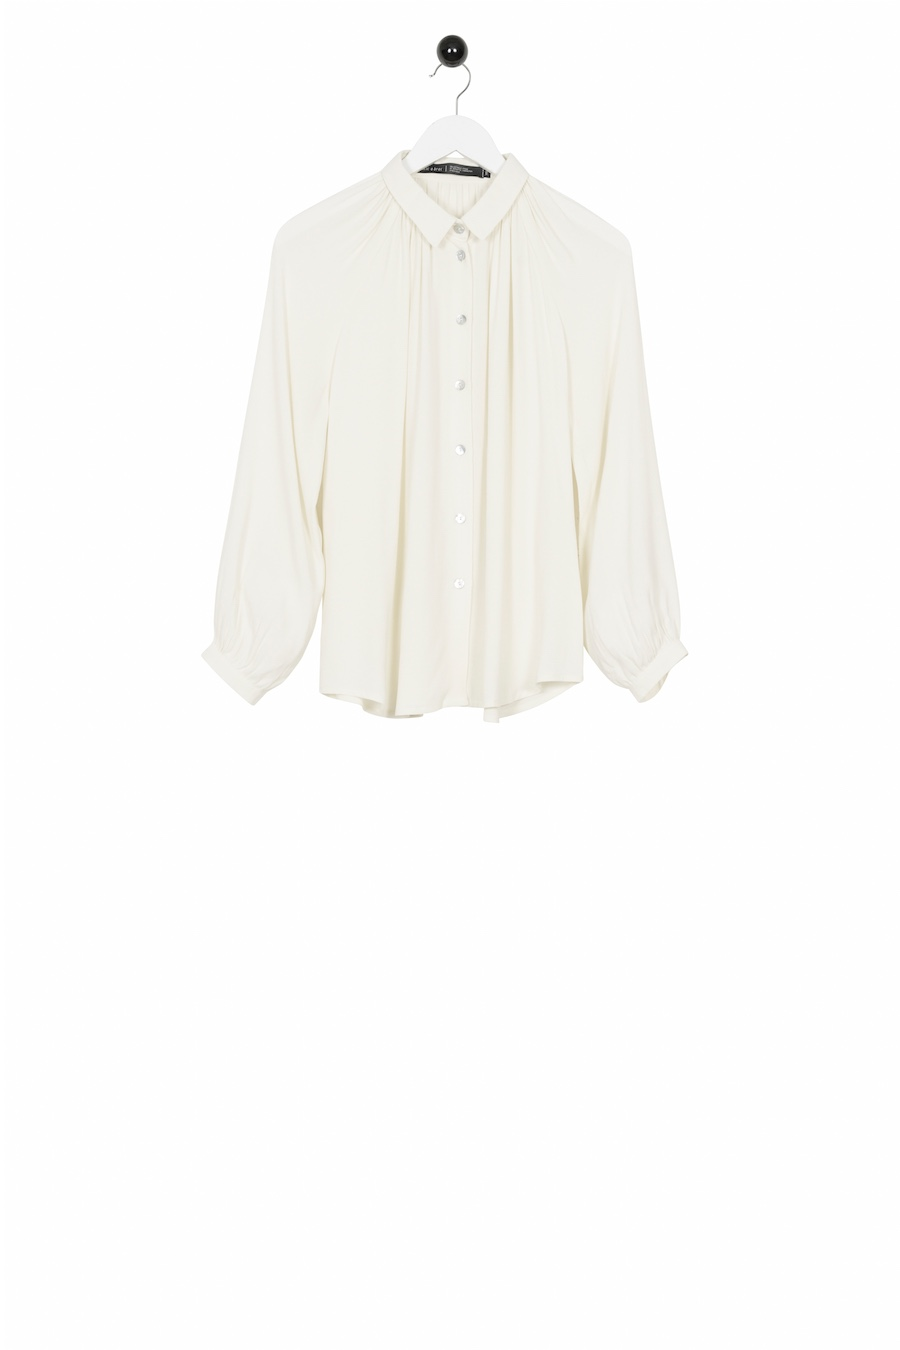 Ebenholts Blouse